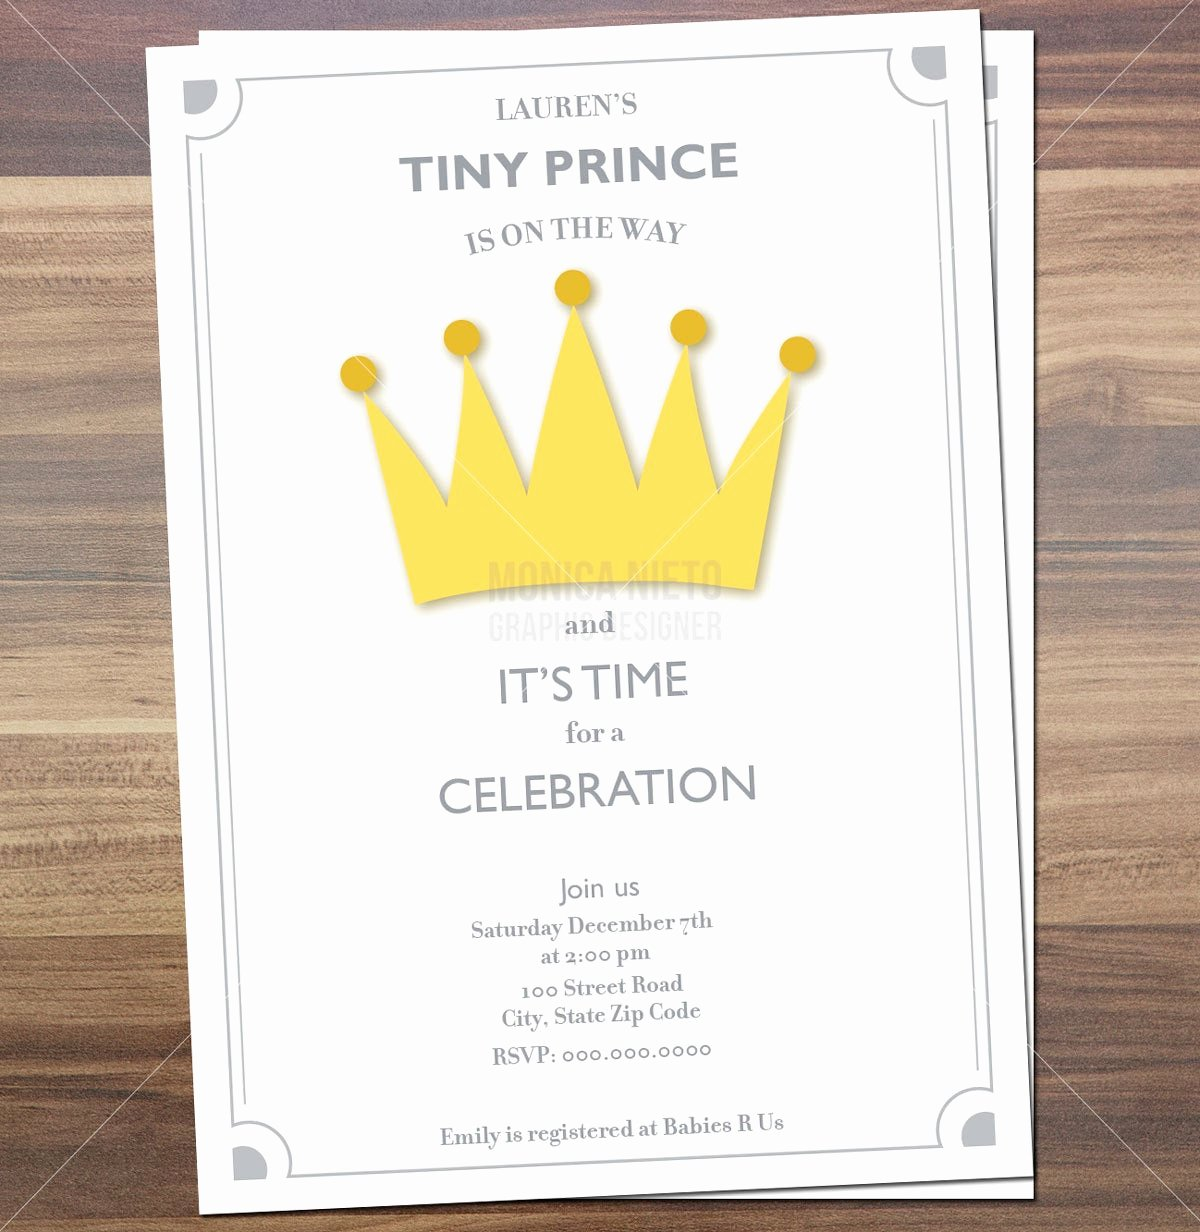 Royal Baby Shower Invitations Beautiful Printable Royal Prince Baby Shower Invitation Little Prince